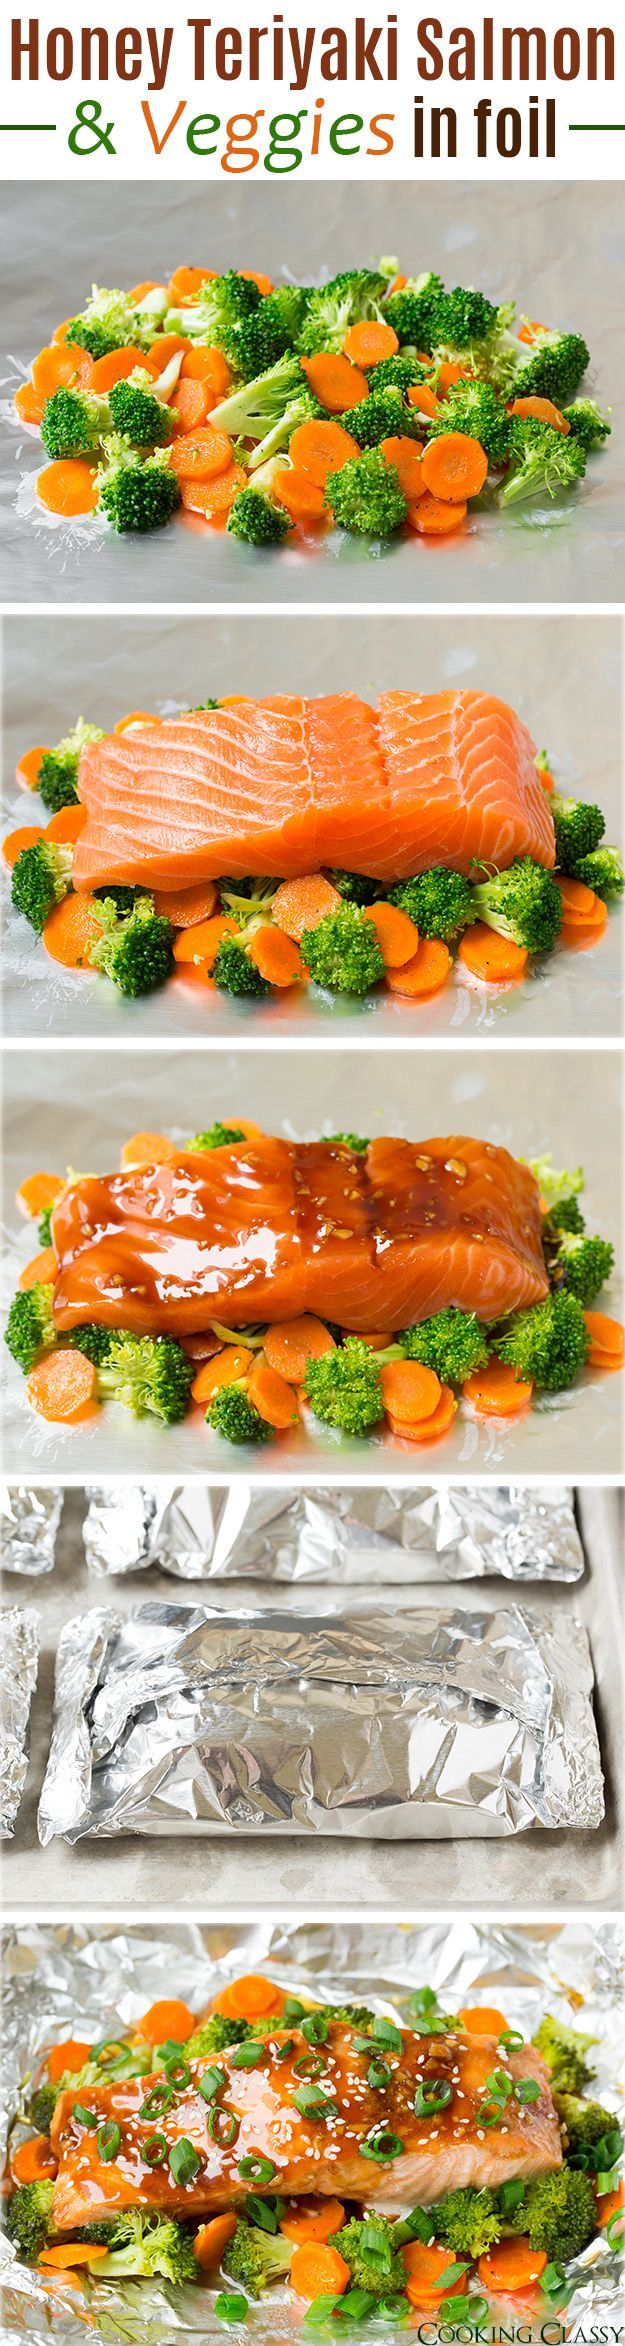 how to cook a whole salmon in foil